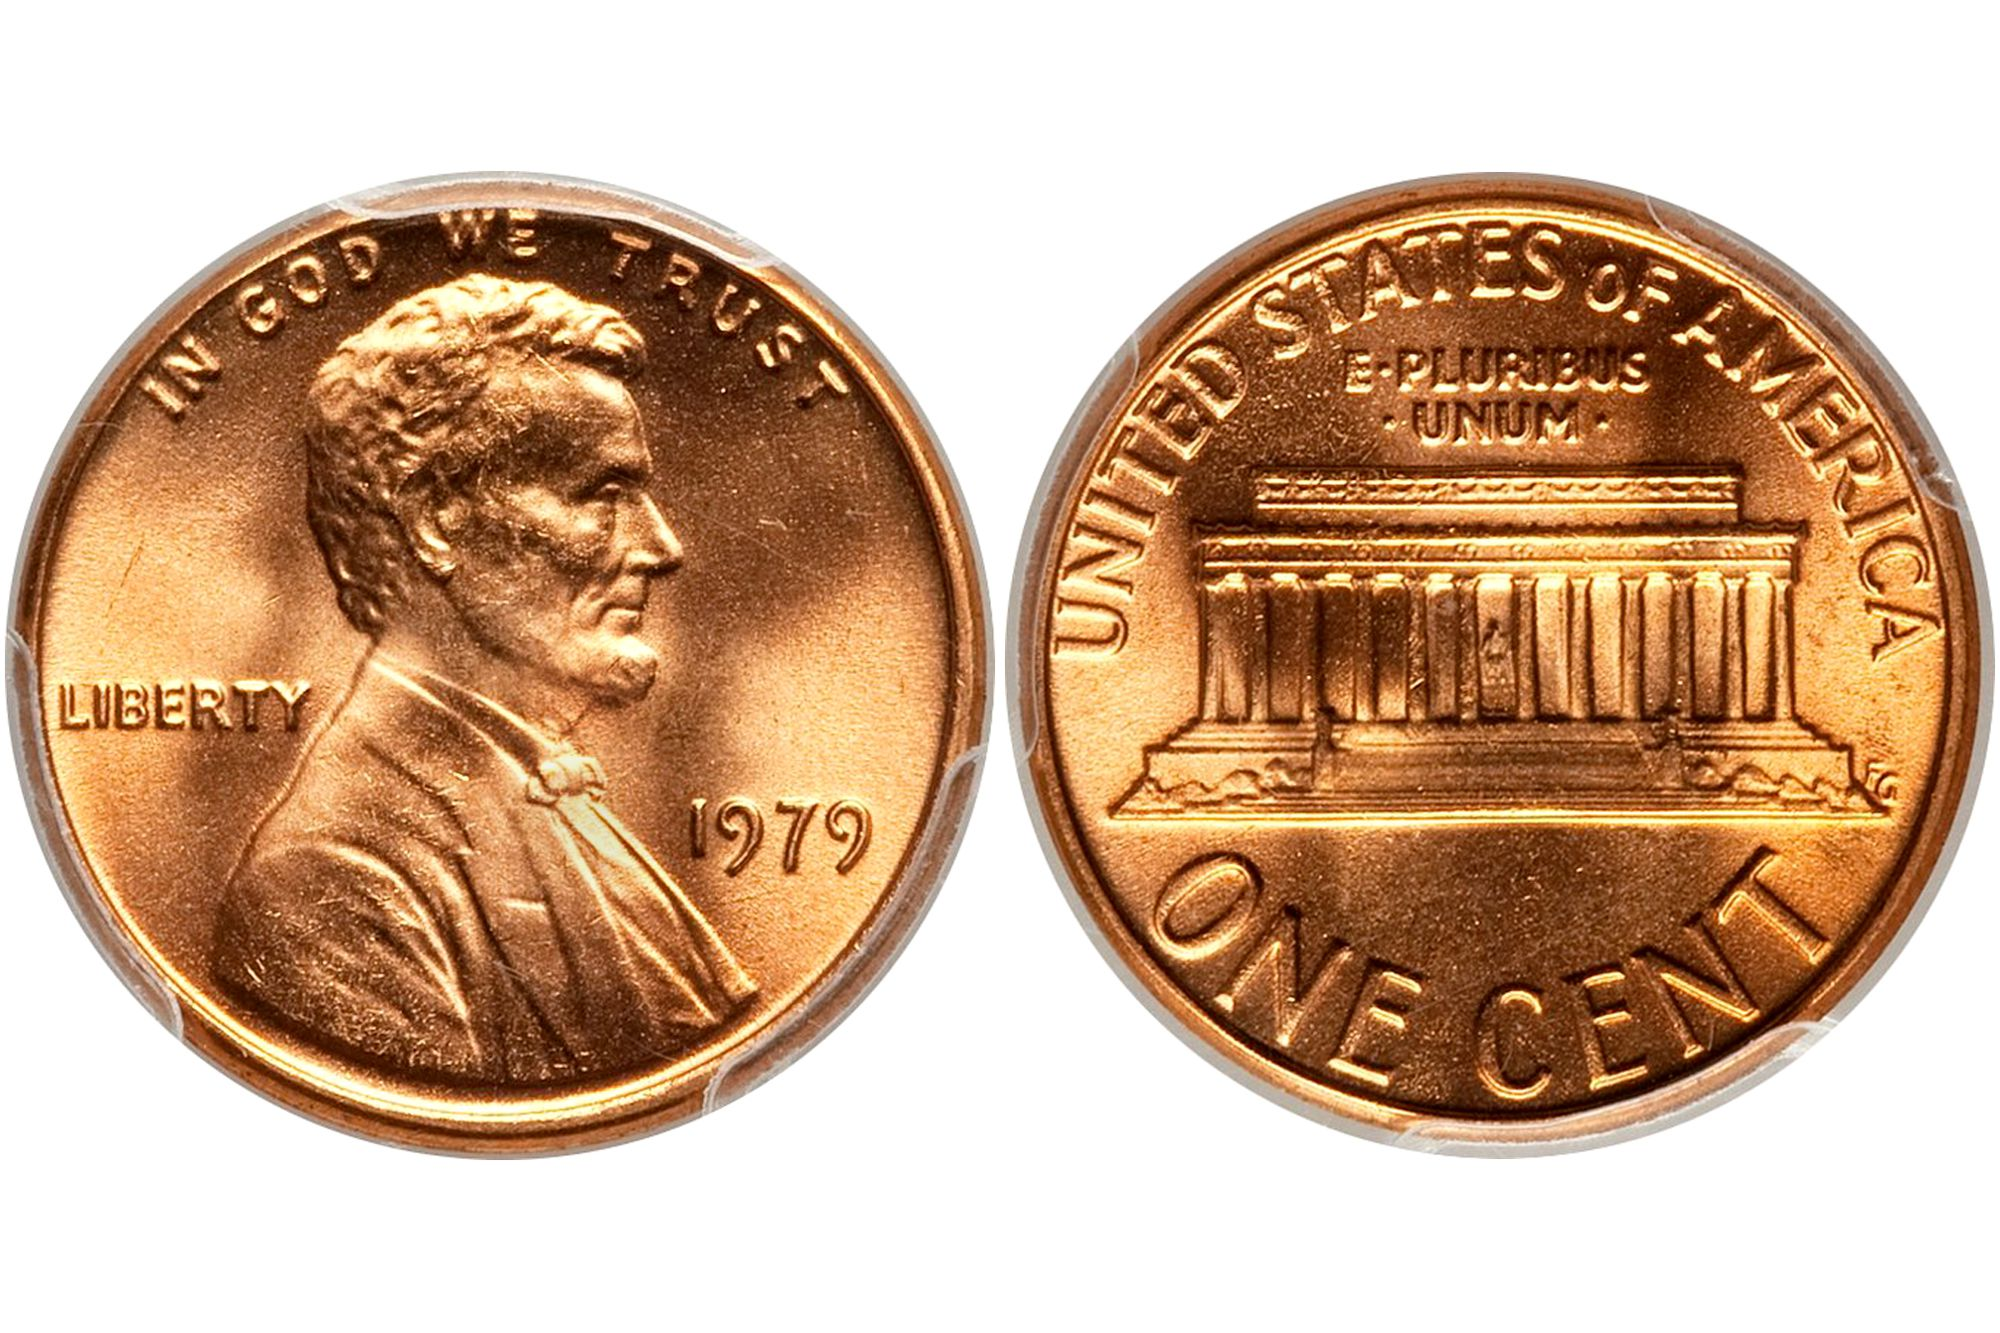 United states uncirculated mint set values and prices how much is my lincoln memorial penny worth xflitez Choice Image